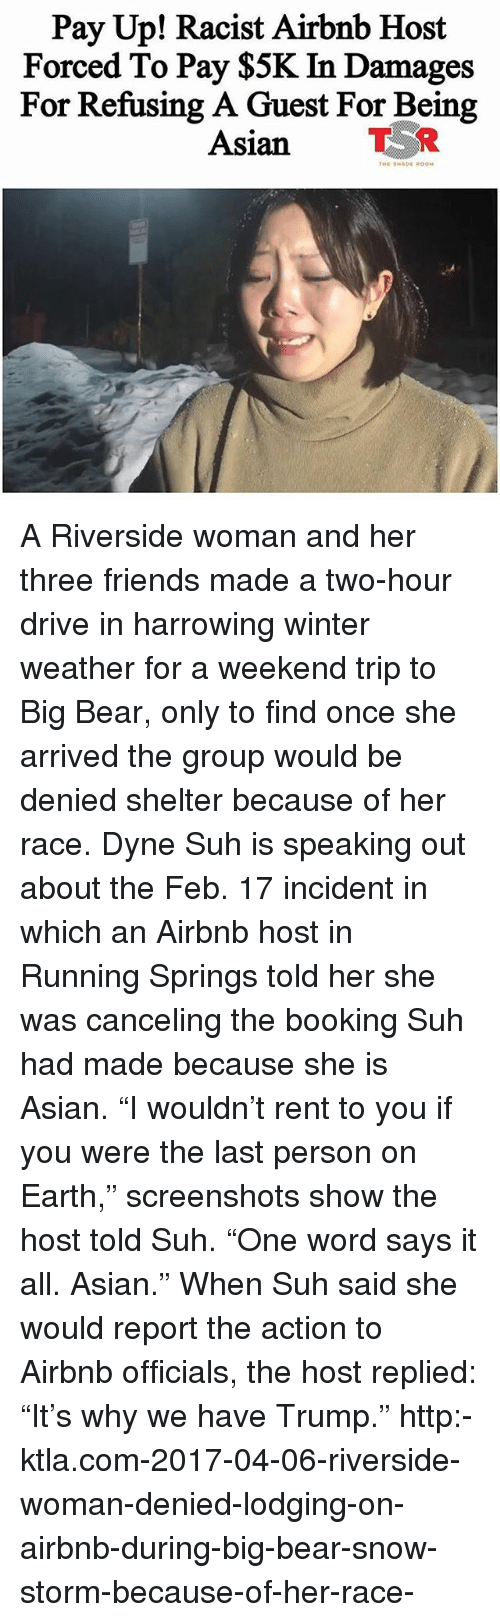 """harrowing: Pay Up! Racist Airbnb Host  Forced To Pay $5K In Damages  For Refusing A Guest For Being  Asian TR A Riverside woman and her three friends made a two-hour drive in harrowing winter weather for a weekend trip to Big Bear, only to find once she arrived the group would be denied shelter because of her race. Dyne Suh is speaking out about the Feb. 17 incident in which an Airbnb host in Running Springs told her she was canceling the booking Suh had made because she is Asian. """"I wouldn't rent to you if you were the last person on Earth,"""" screenshots show the host told Suh. """"One word says it all. Asian."""" When Suh said she would report the action to Airbnb officials, the host replied: """"It's why we have Trump."""" http:-ktla.com-2017-04-06-riverside-woman-denied-lodging-on-airbnb-during-big-bear-snow-storm-because-of-her-race-"""